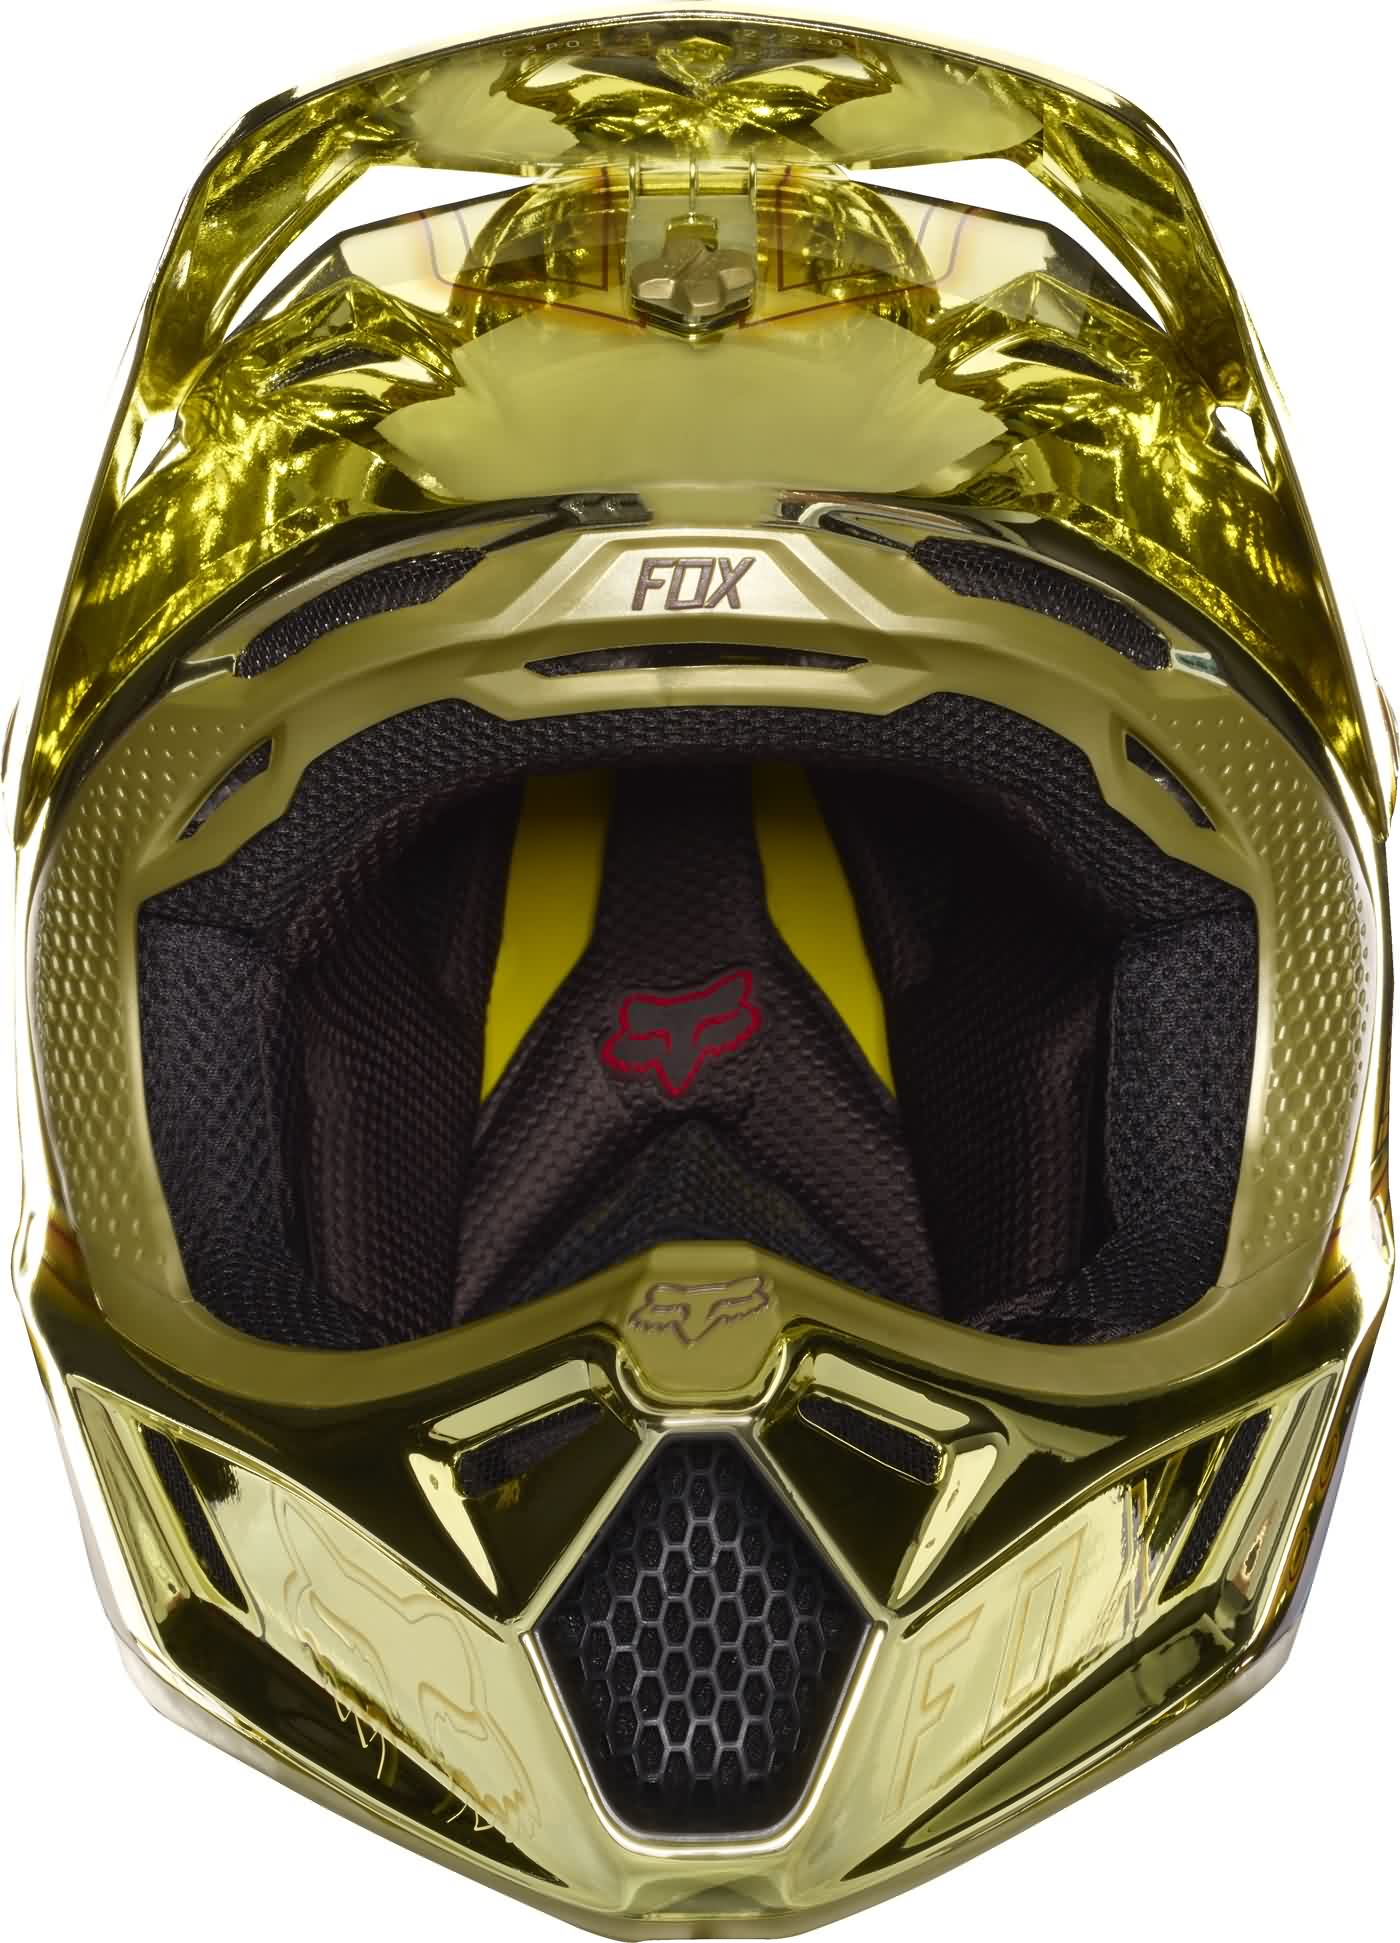 Fox Racing 2016 Star Wars C3PO Helmets Limited Edition Overview